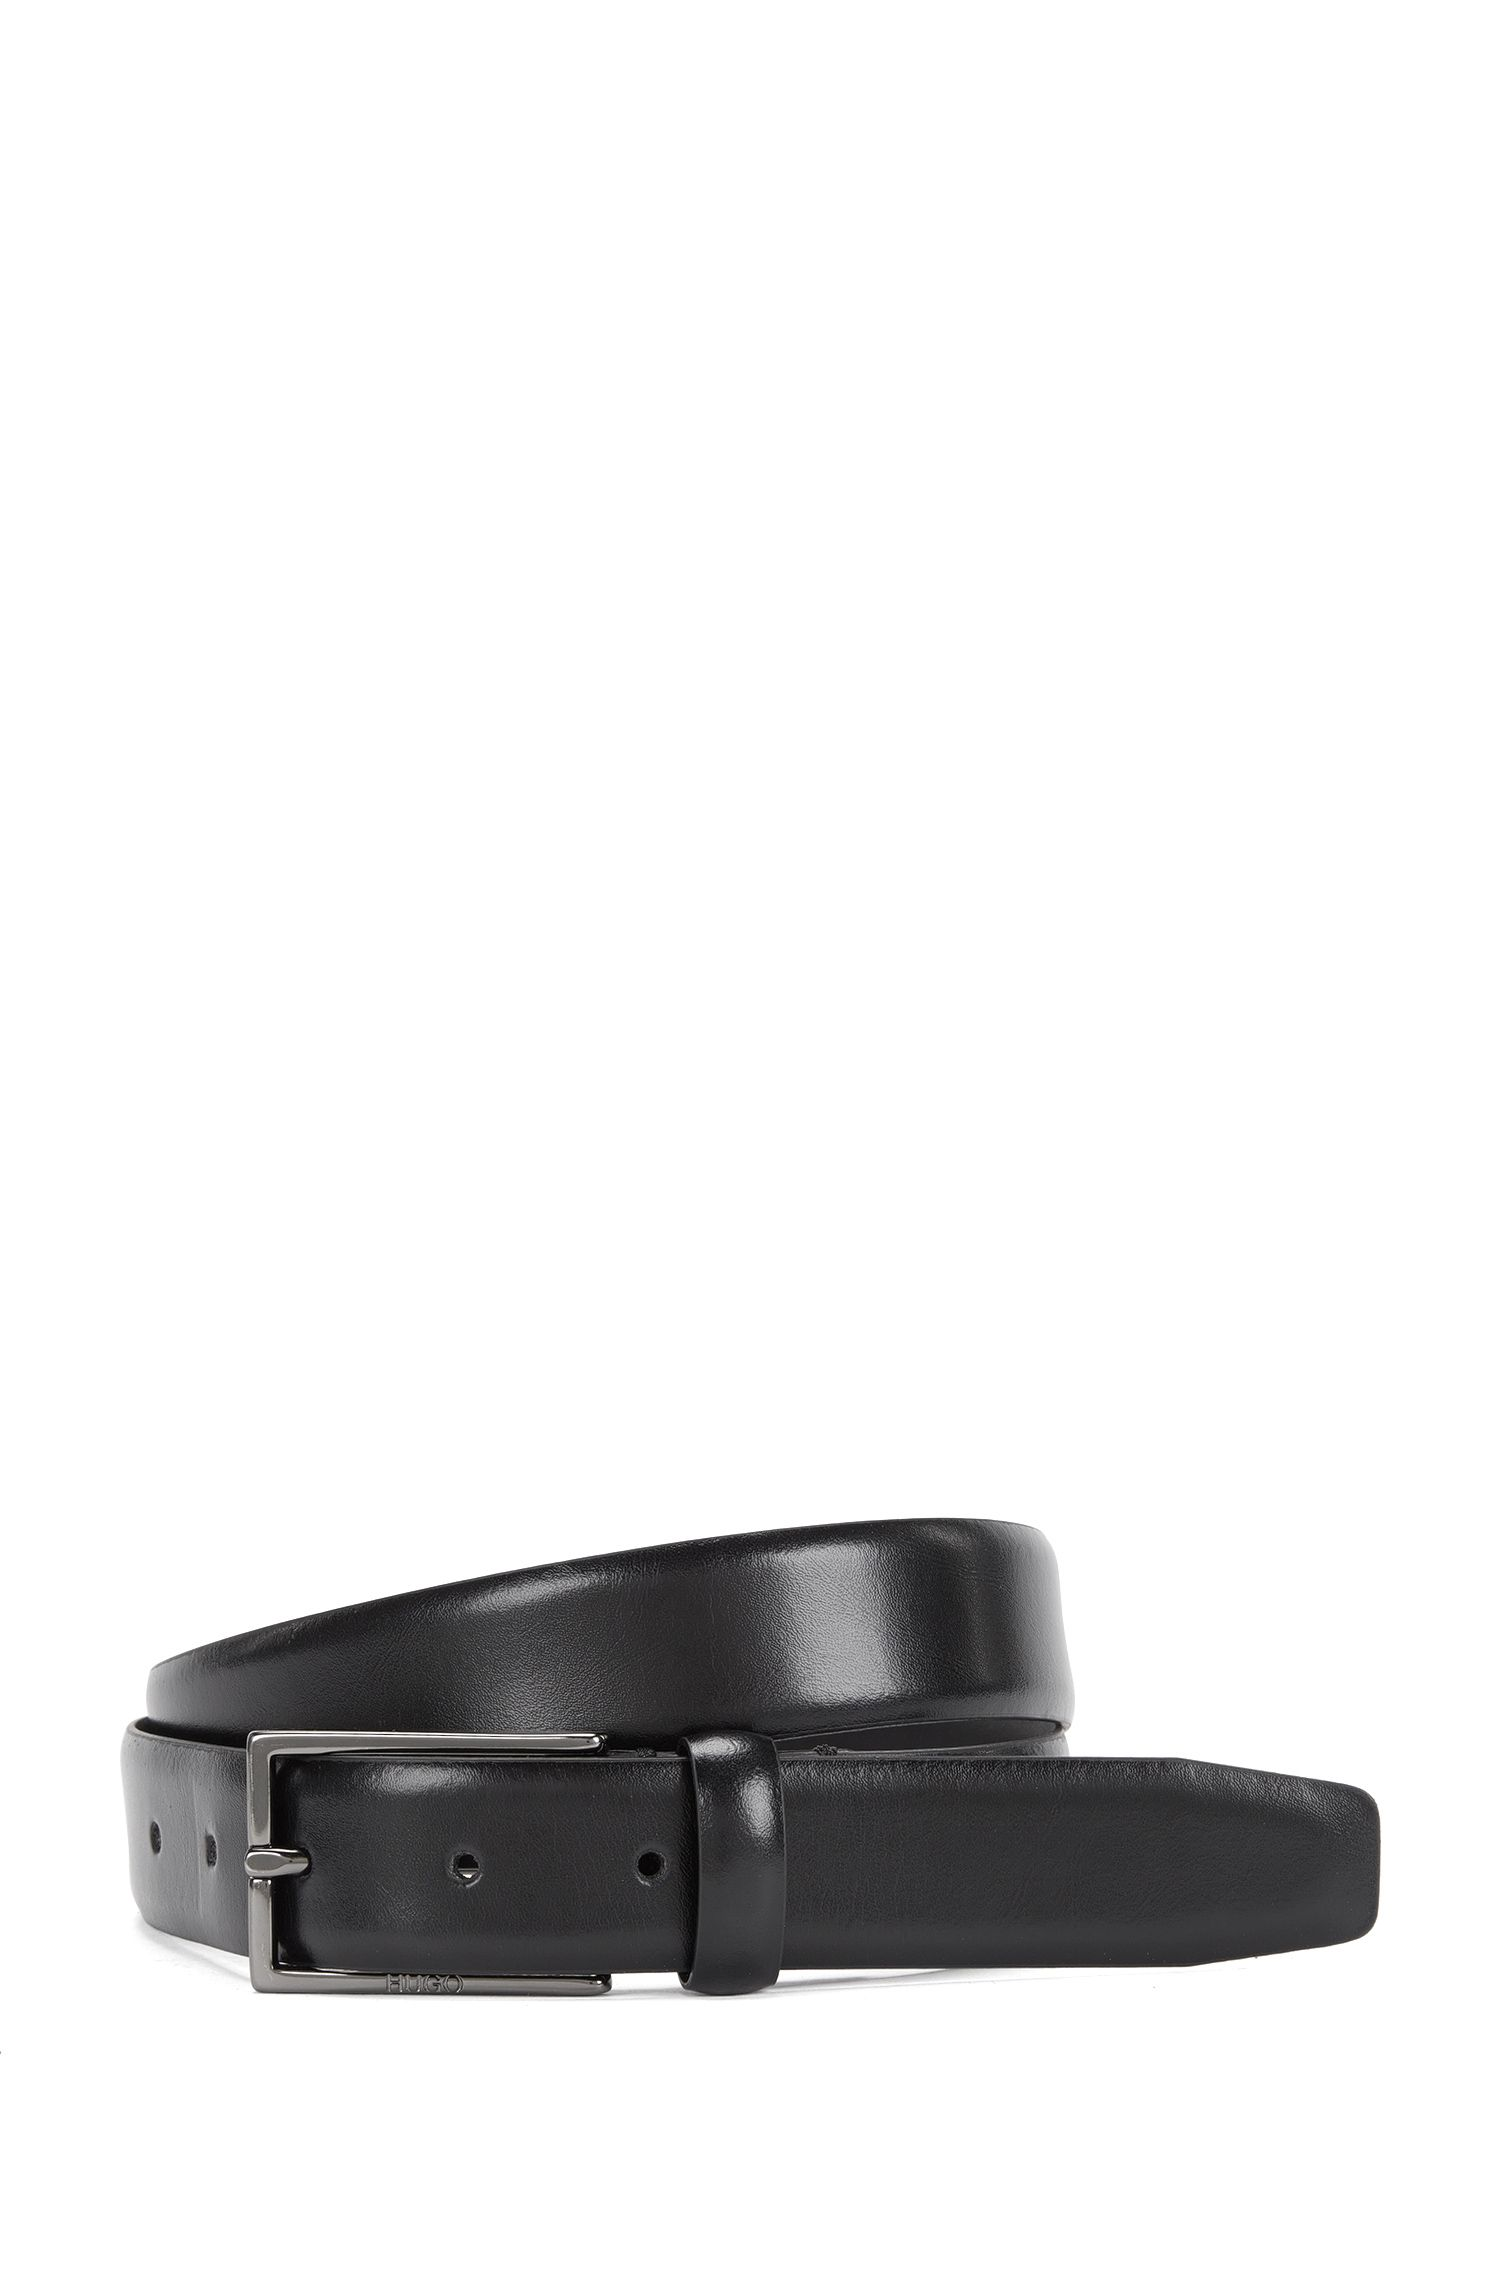 'Ganticus Sz Itpl' | Italian Leather Belt